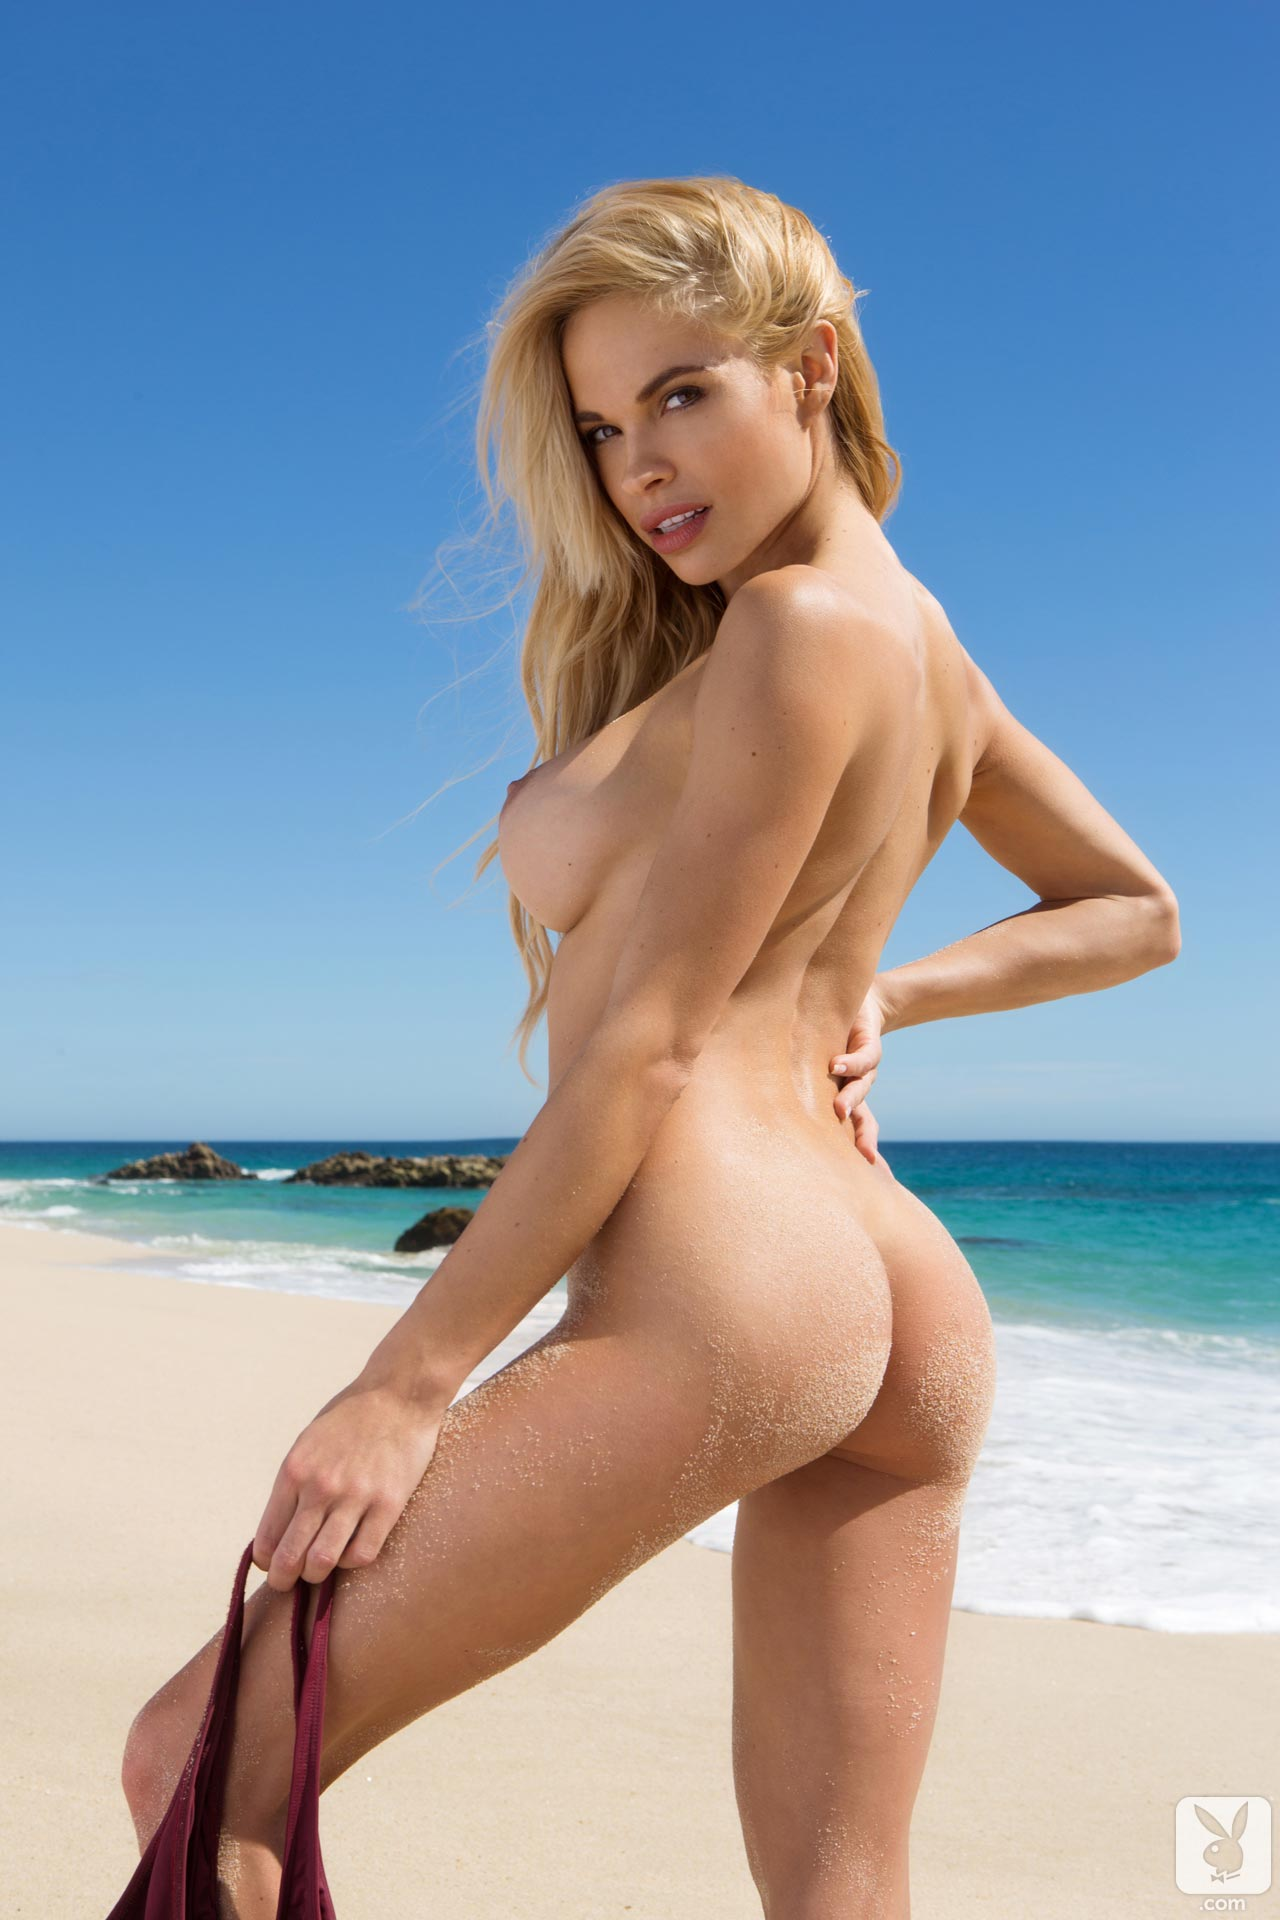 Playboy Playmate Dani Mathers At The Beach Posing Her Sexy -5402